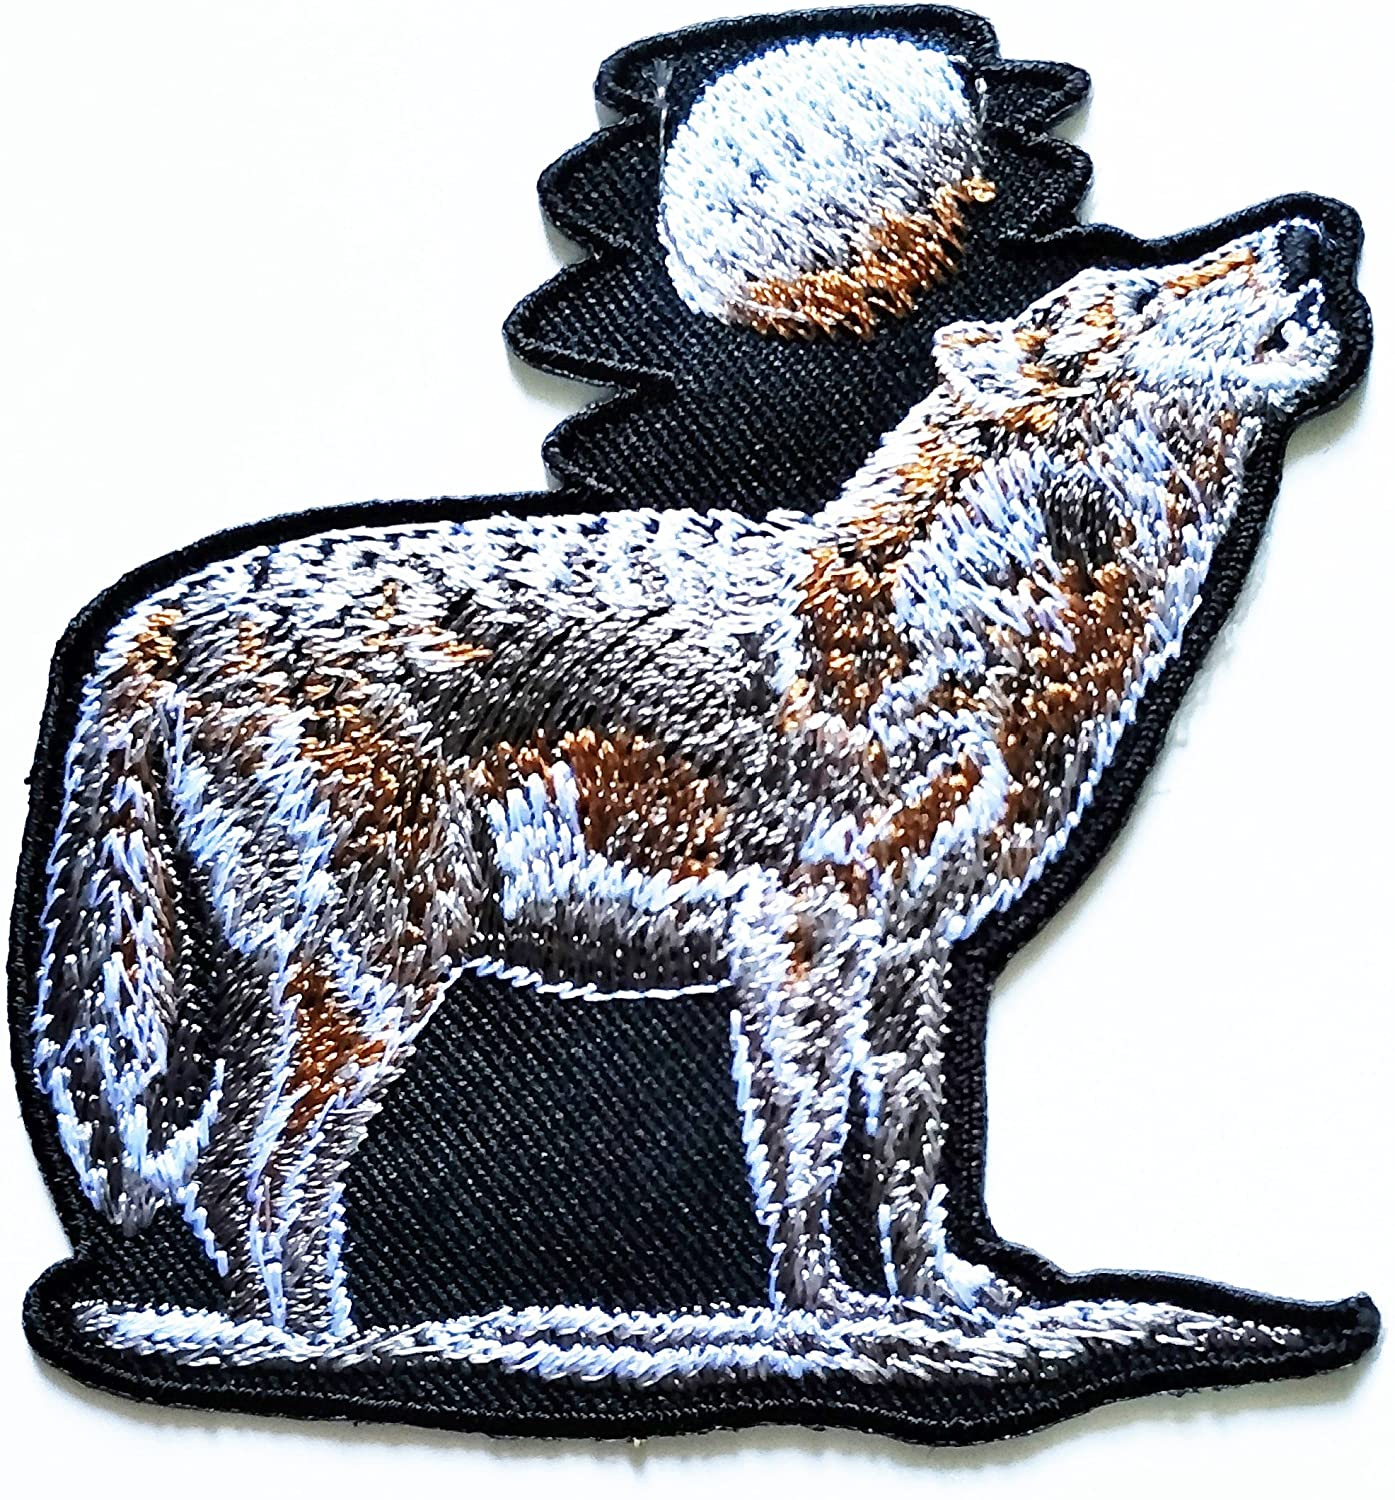 HHO Howling Wolf Patch Embroidered DIY Patches Cute Applique Sew Iron on Kids Craft Patch for Bags Jackets Jeans Clothes